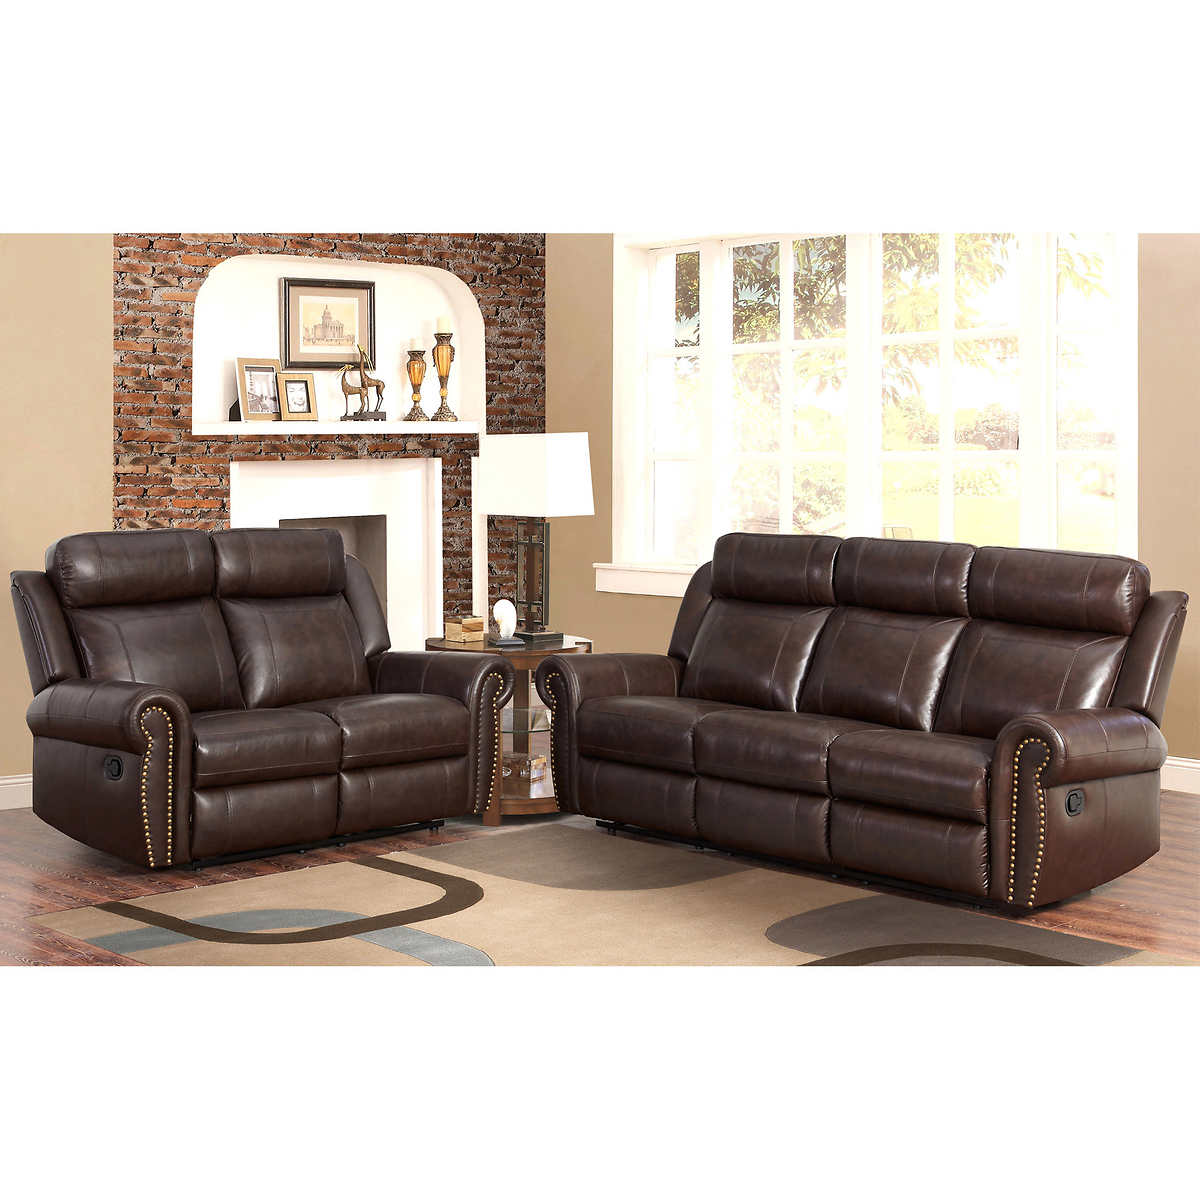 White creamy leather sofa couch and love seat with f for Fabric reclining living room sets